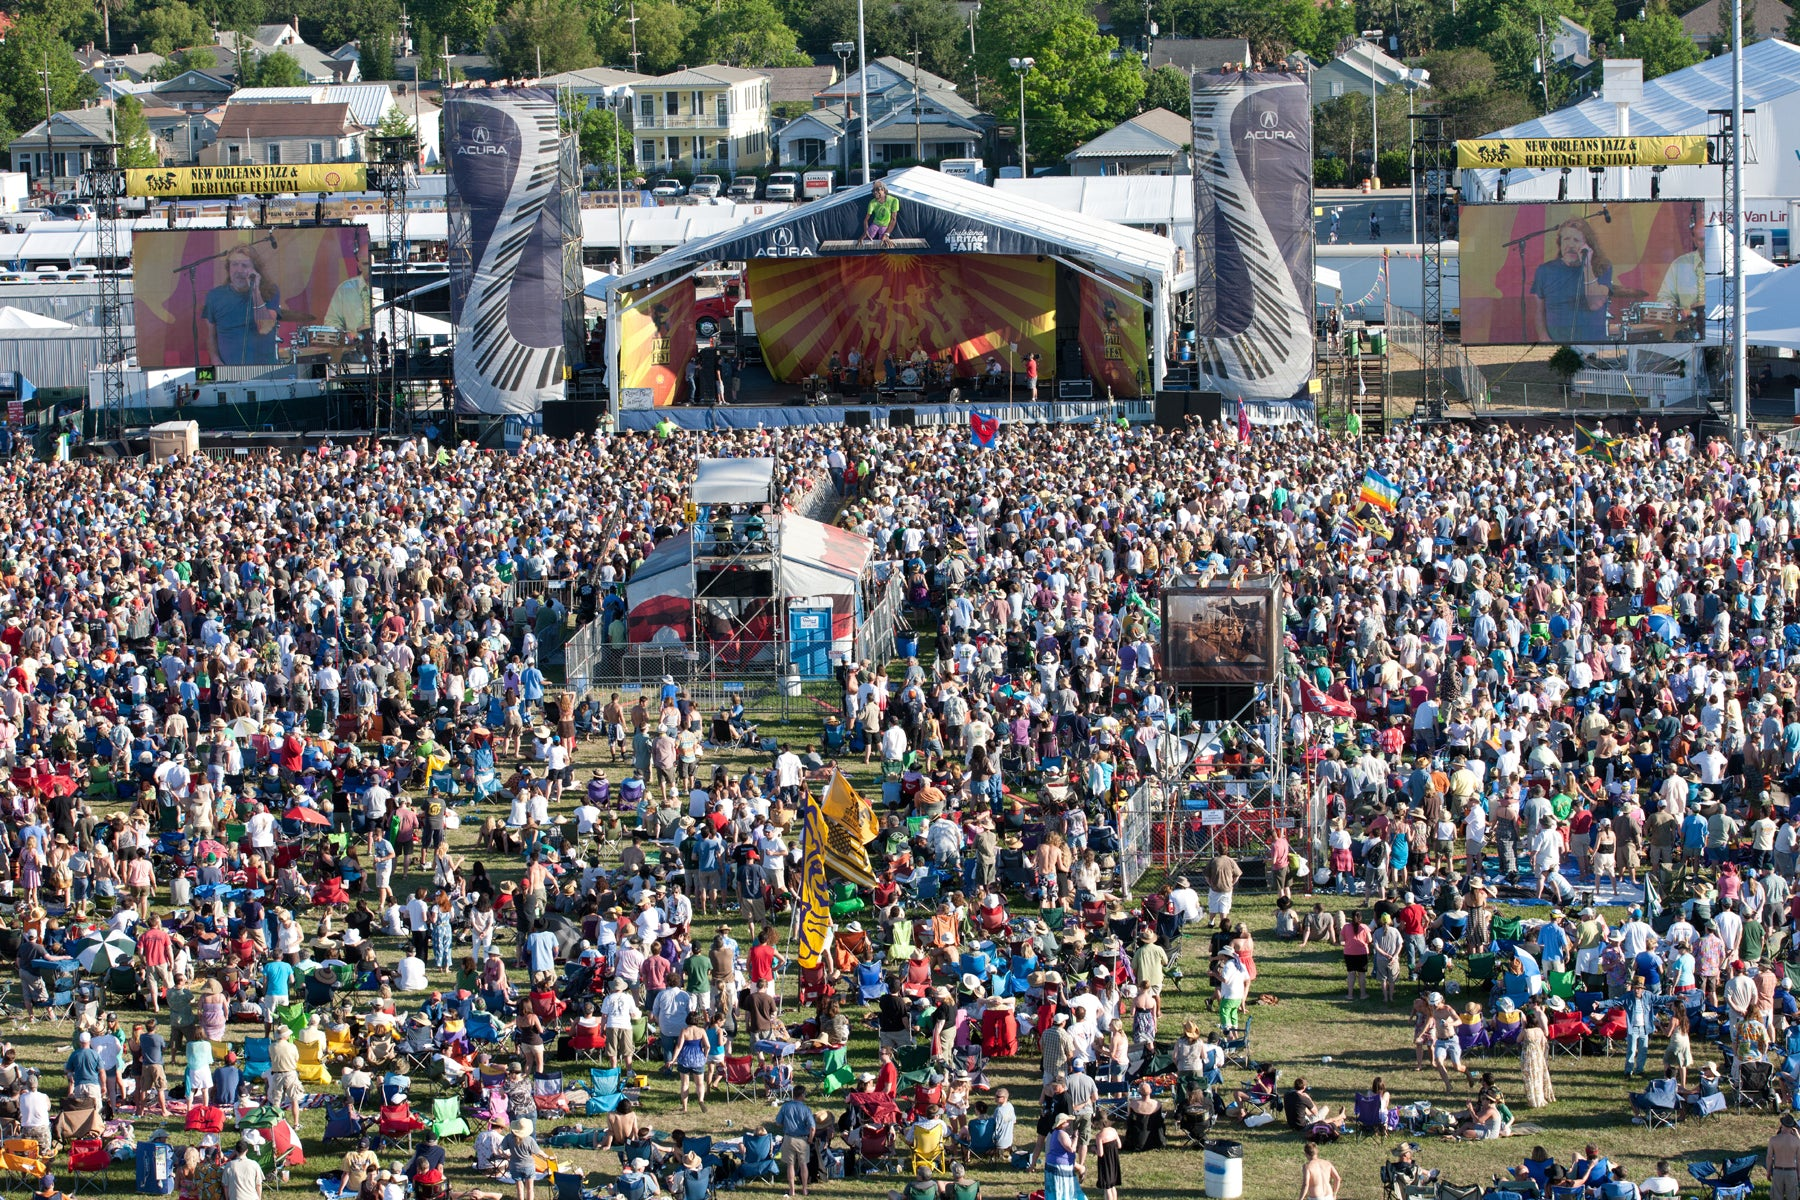 performs at the New Orleans Jazz & Heritage Festival 2011, at the Farigrounds Racetrack in New Orleans, Loouisiana.